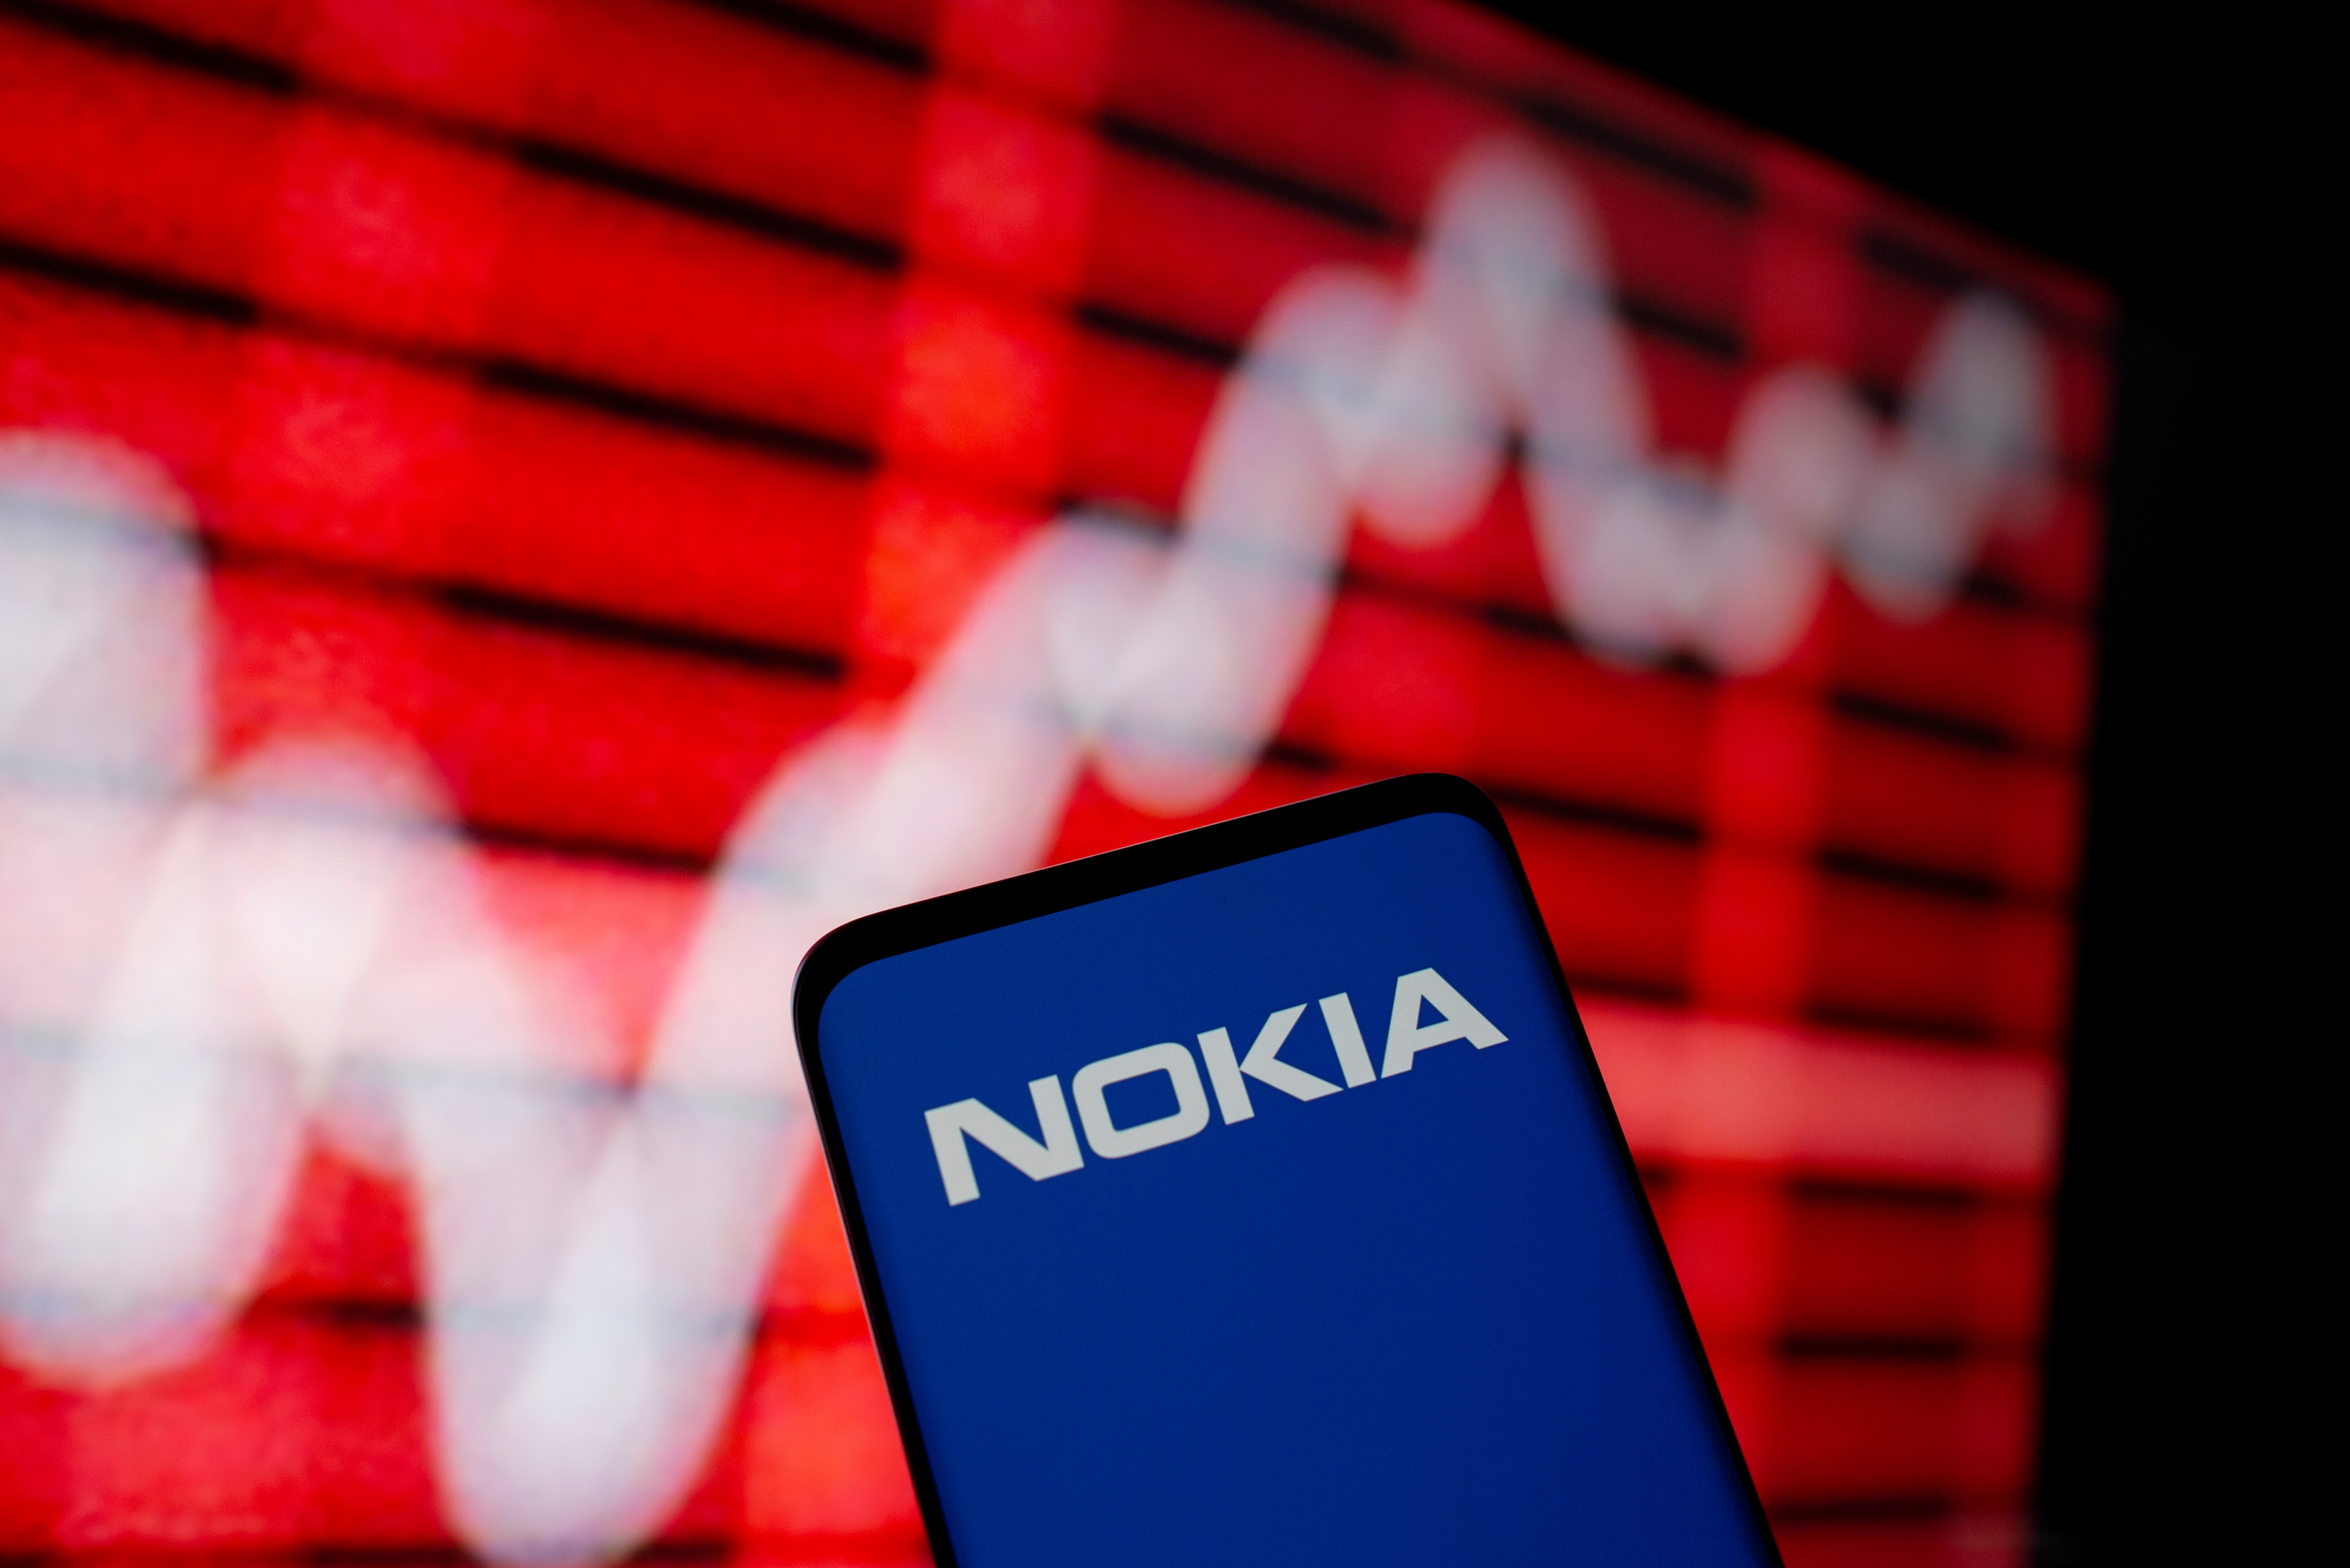 The Nokia logo is seen on a smartphone in front of a displayed stock graph in this illustration taken February 5, 2021. REUTERS/Dado Ruvic/Illustration/File Photo